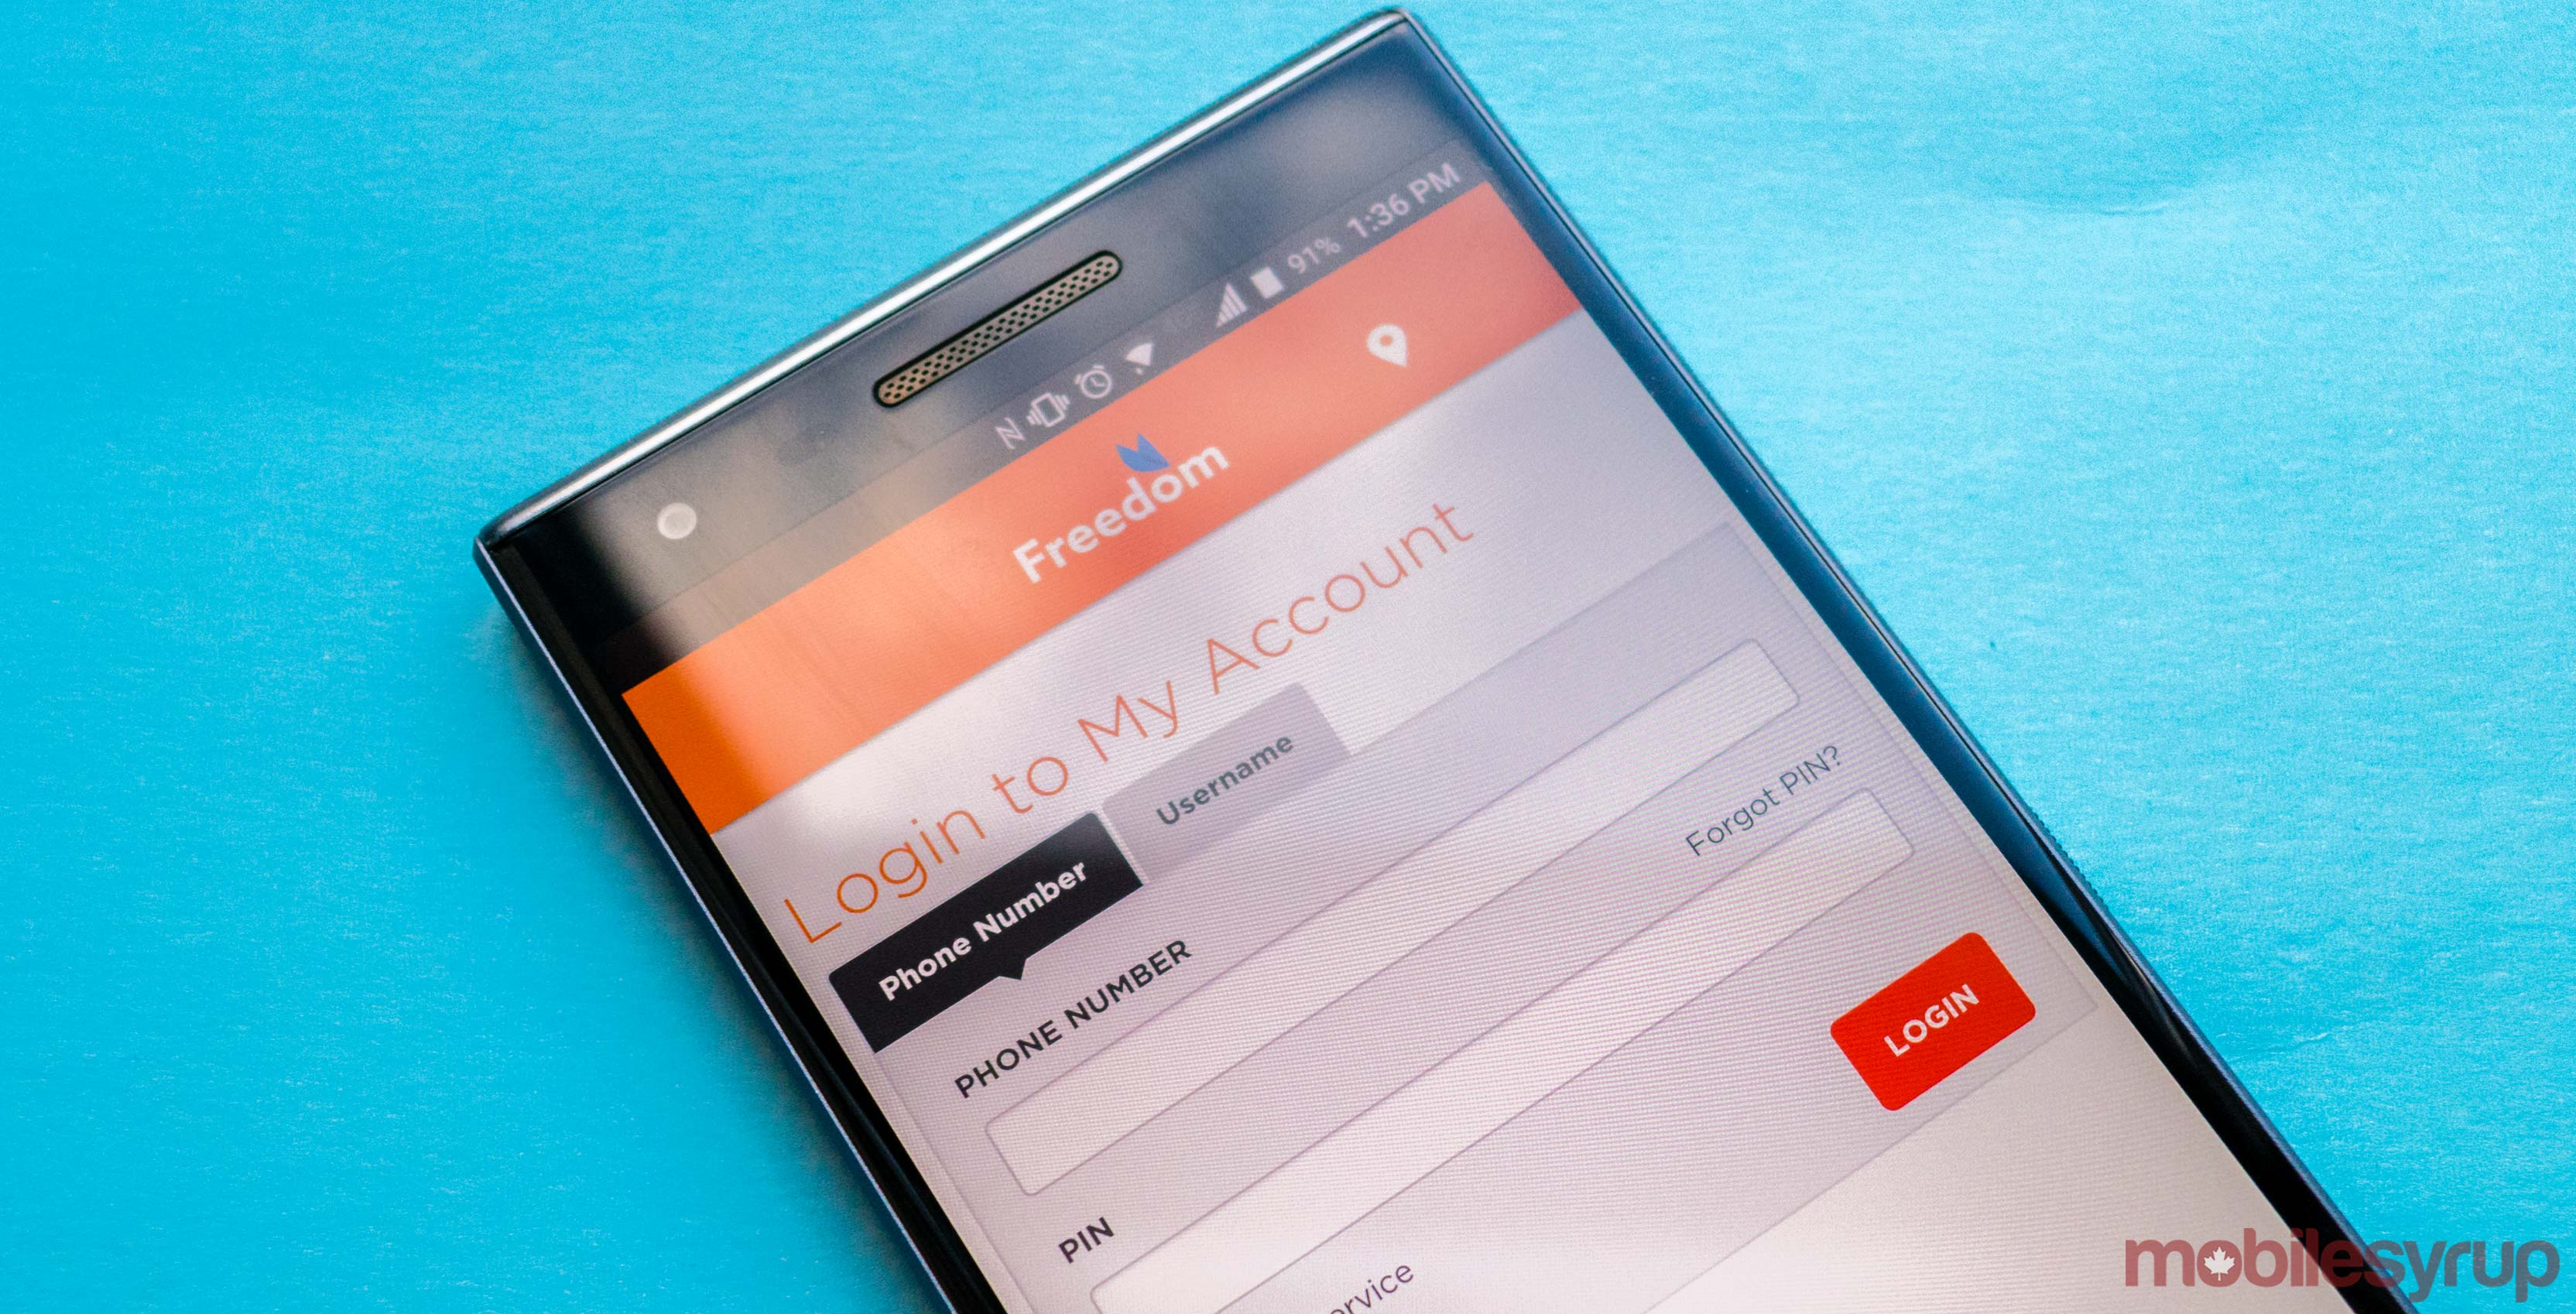 Freedom Mobile's My Account app